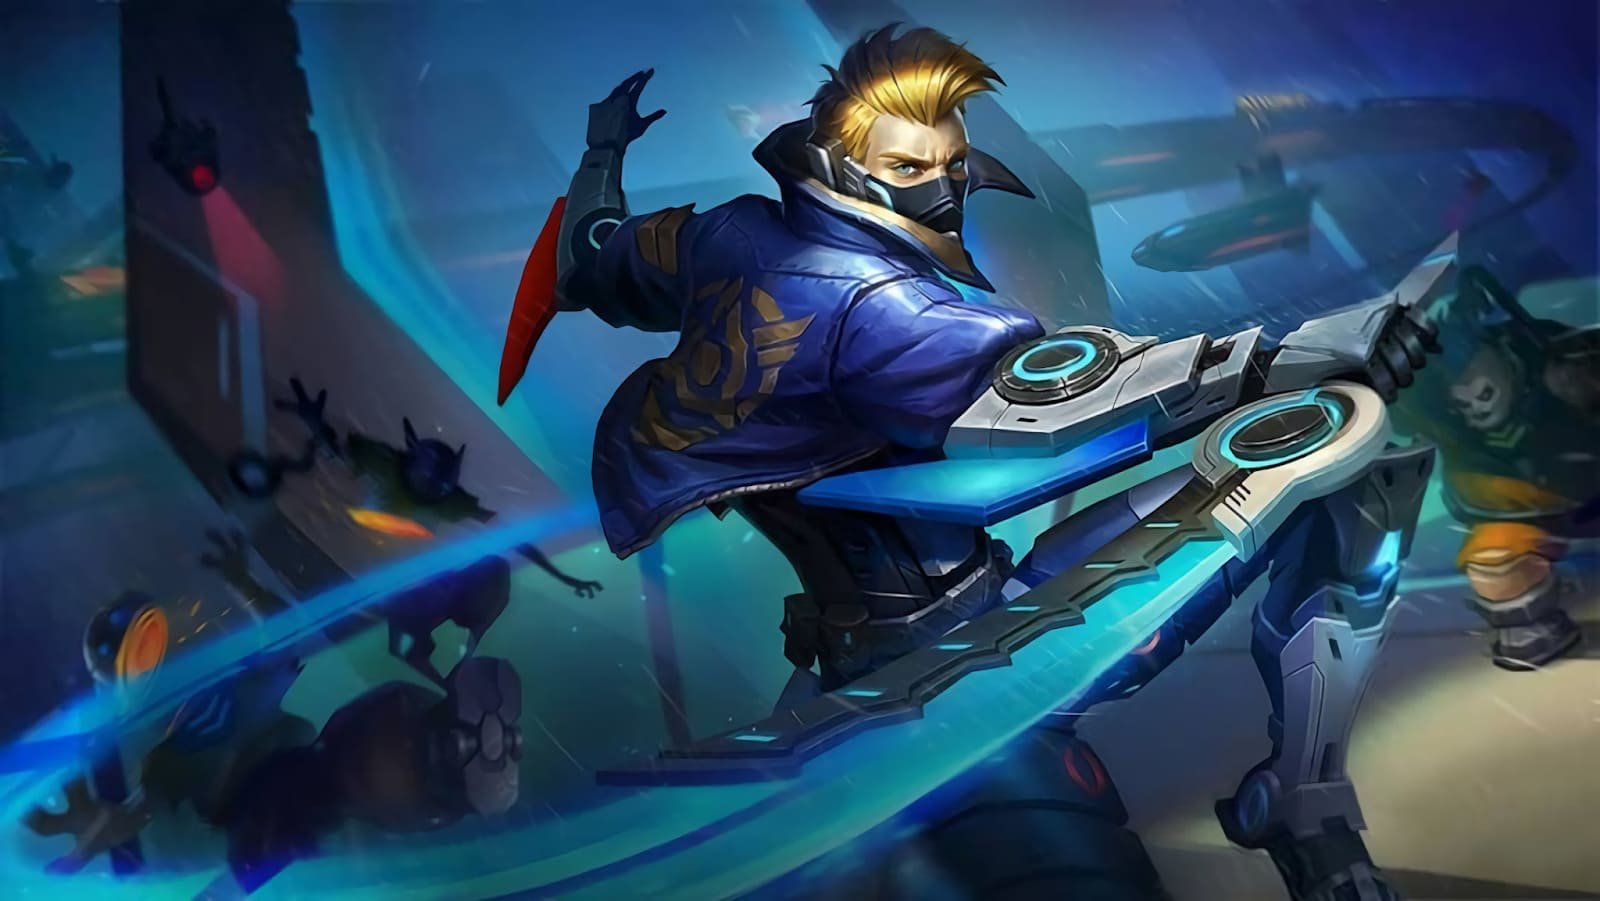 Wallpaper Hayabusa Future Enforcer Skin Mobile Legends HD for PC